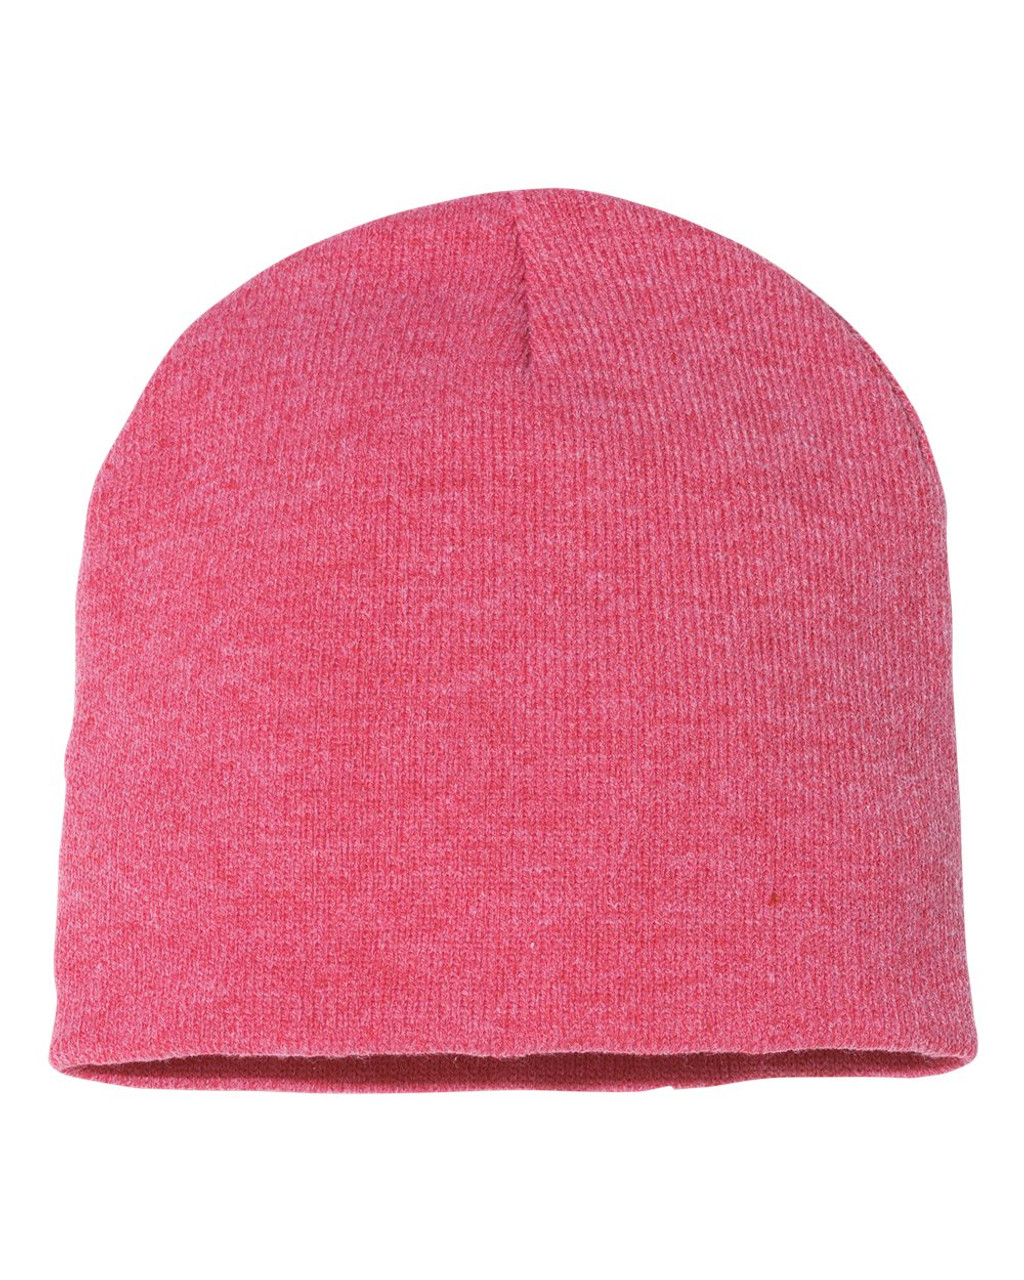 "Heather Red - SP08 Sportsman Acrylic Knit 8"" Toque 